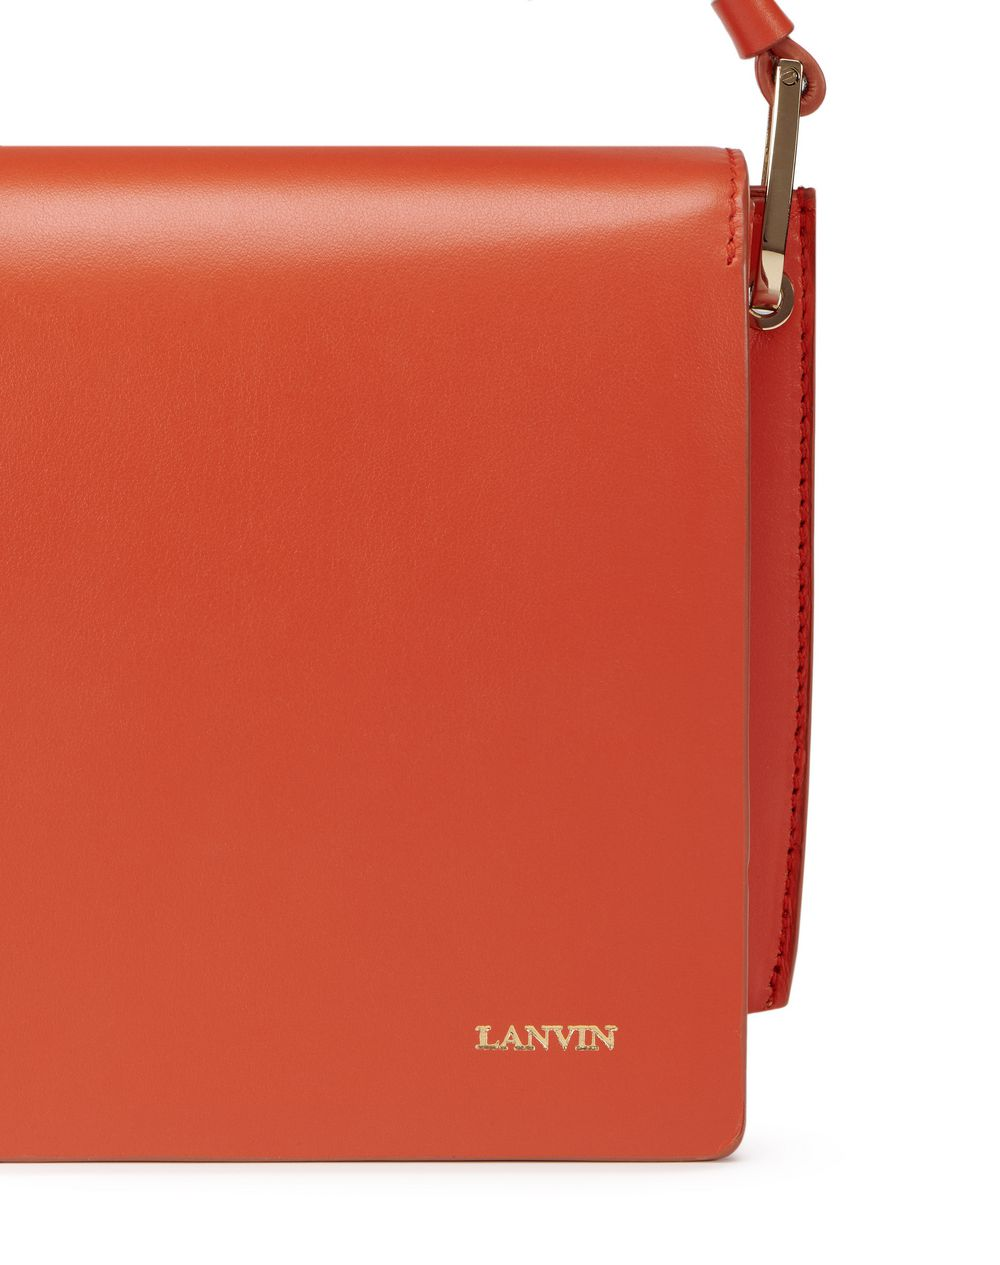 BORSA PIXEL-IT ARANCIONE BRILLANTE  - Lanvin